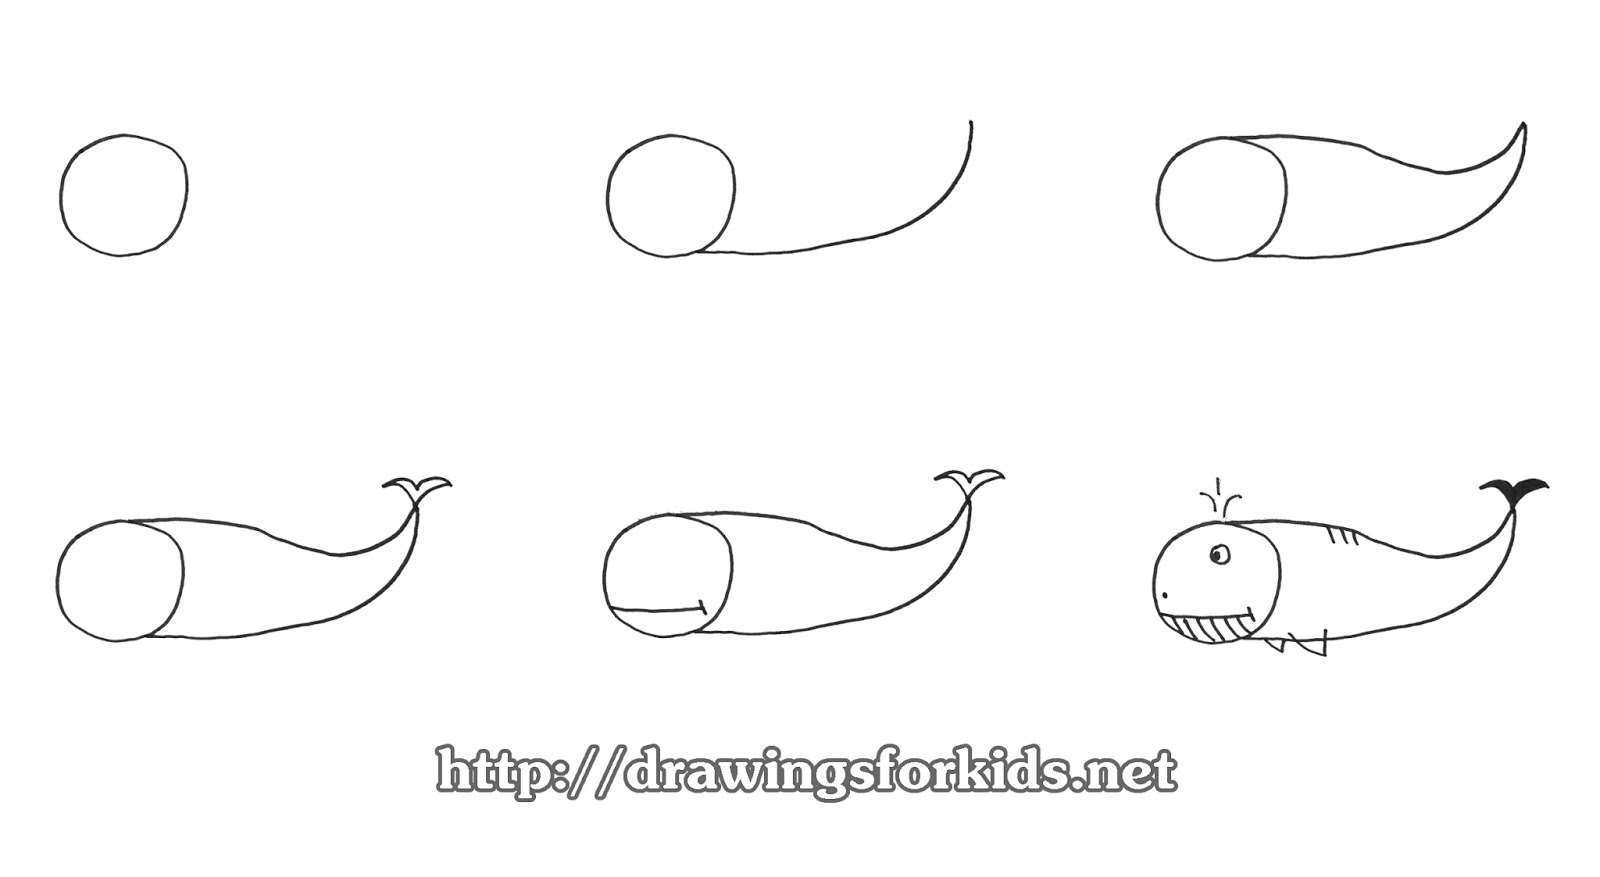 how to draw a whale step by step how to draw a whale for kids drawingsforkidsnet to how step a by step draw whale